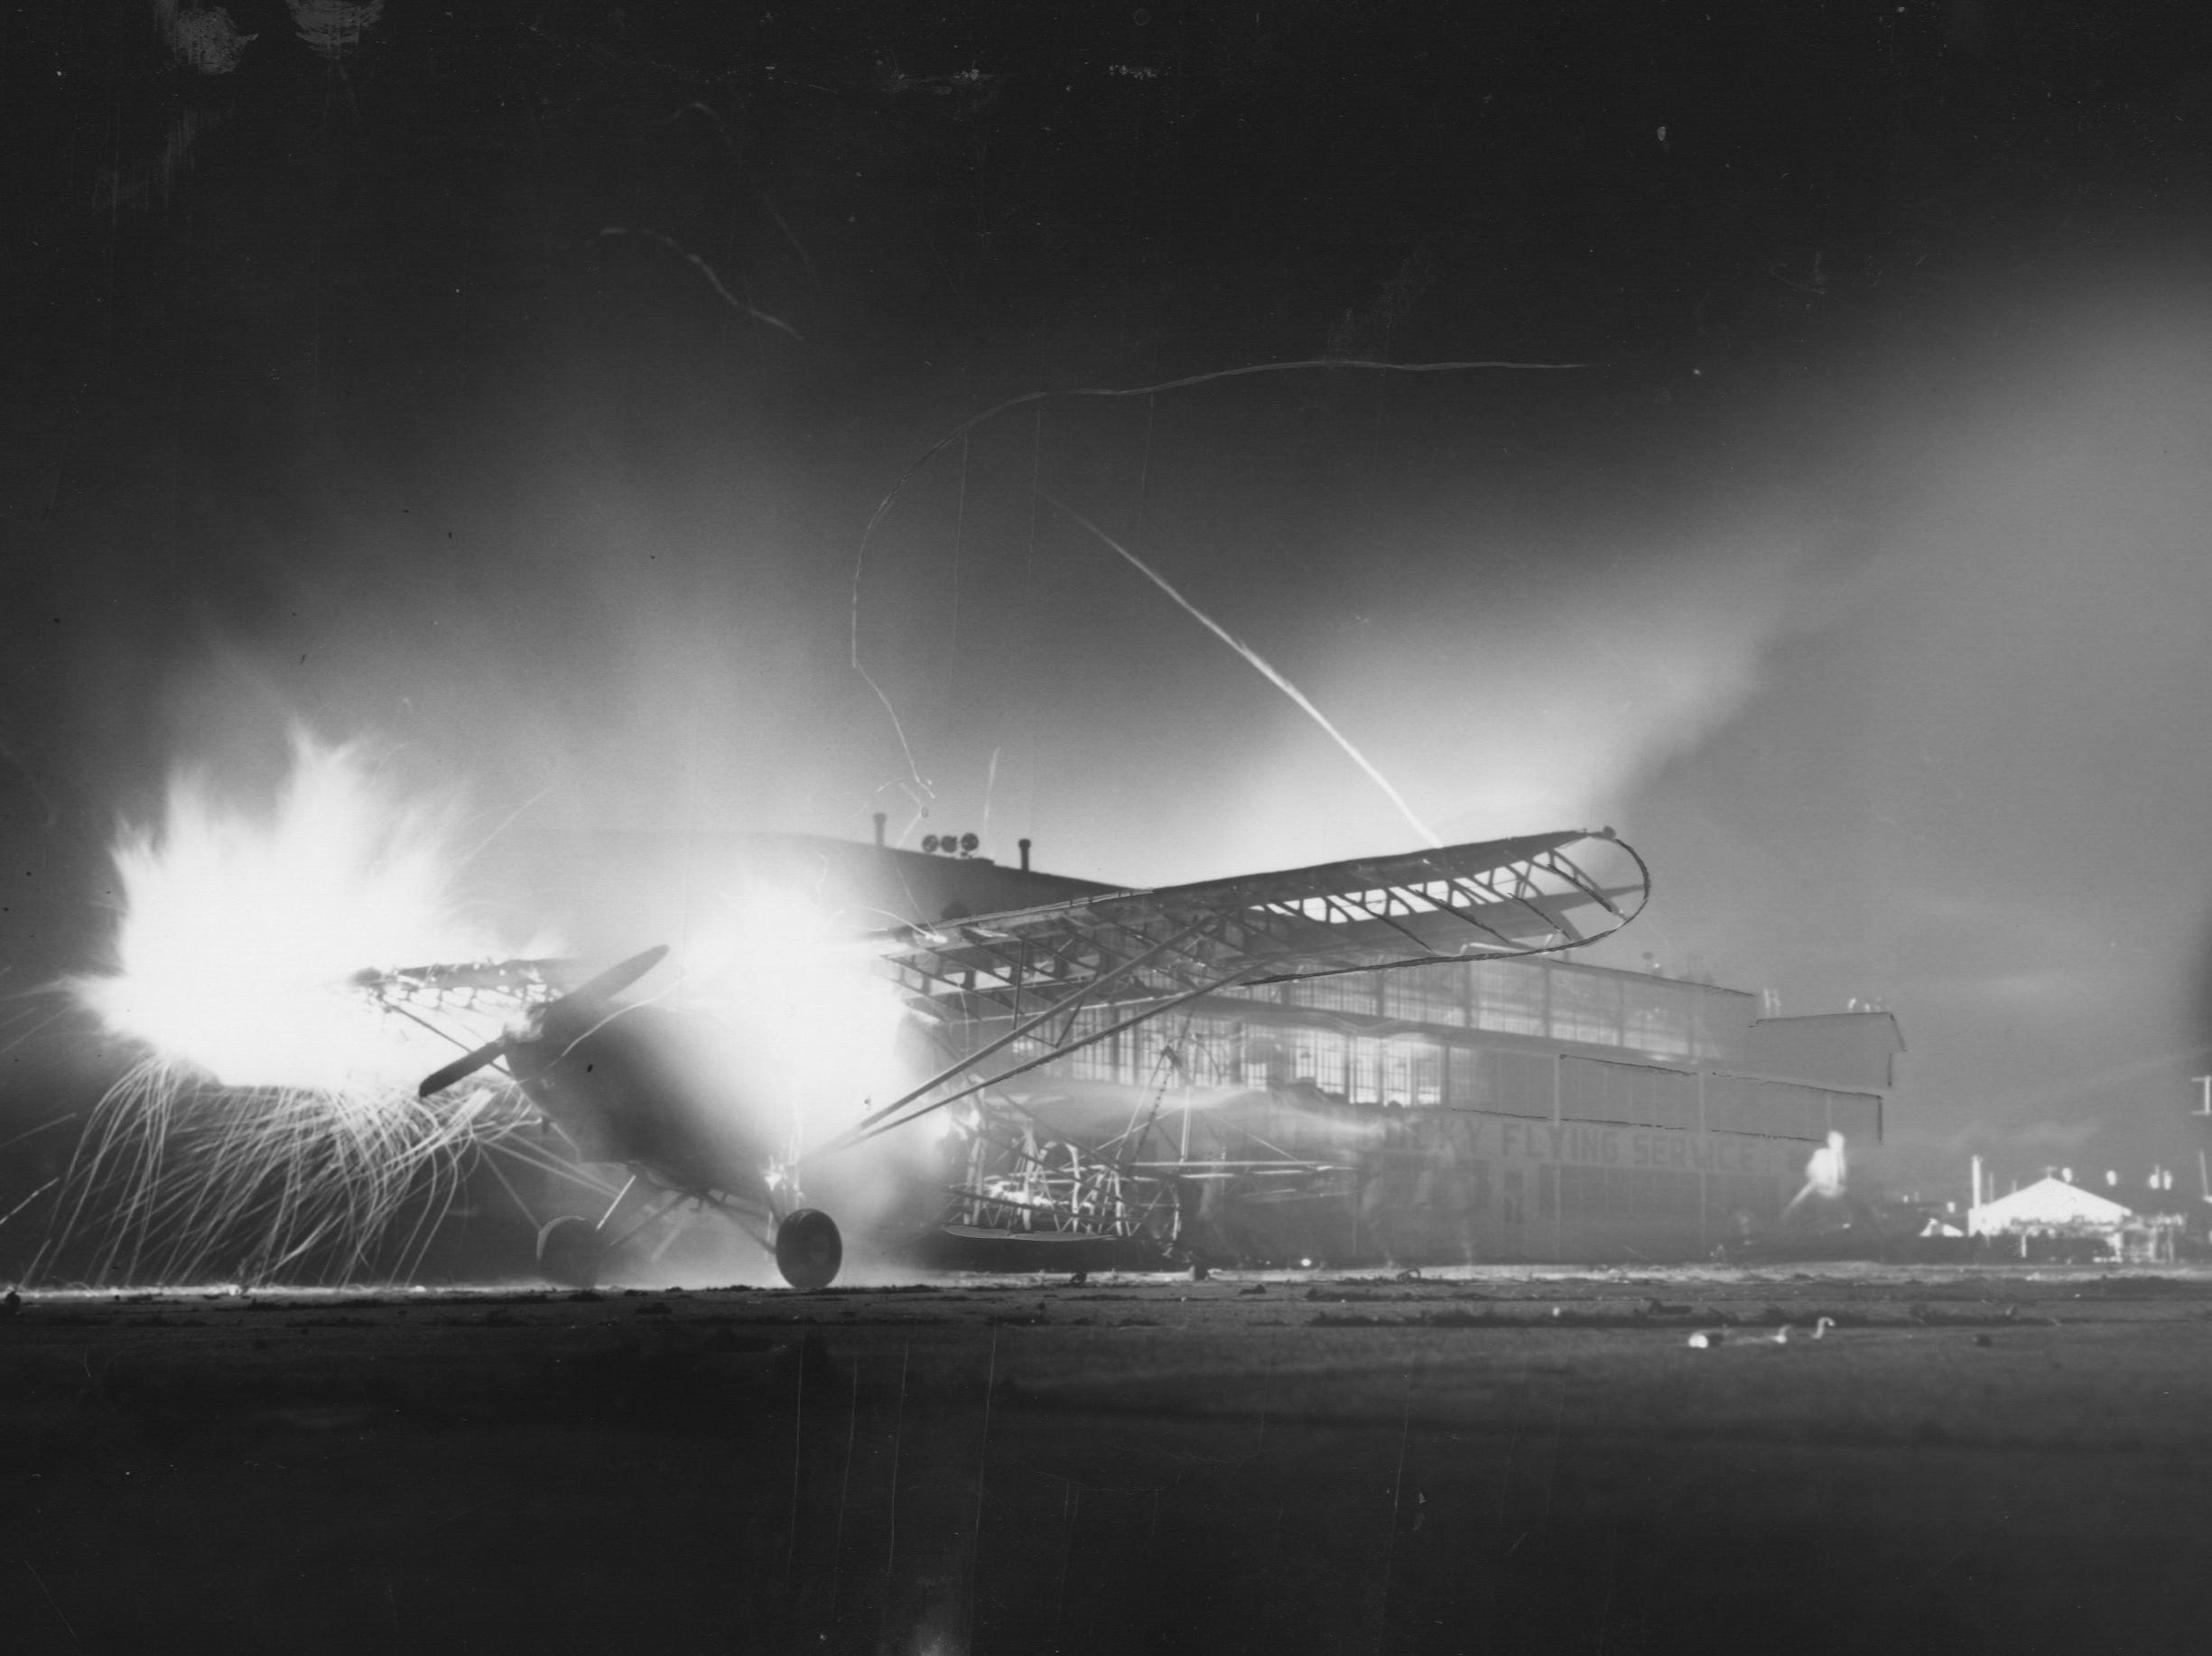 Flying sparks etch streaks in the night air as a private plane burn at Bowman Field. 